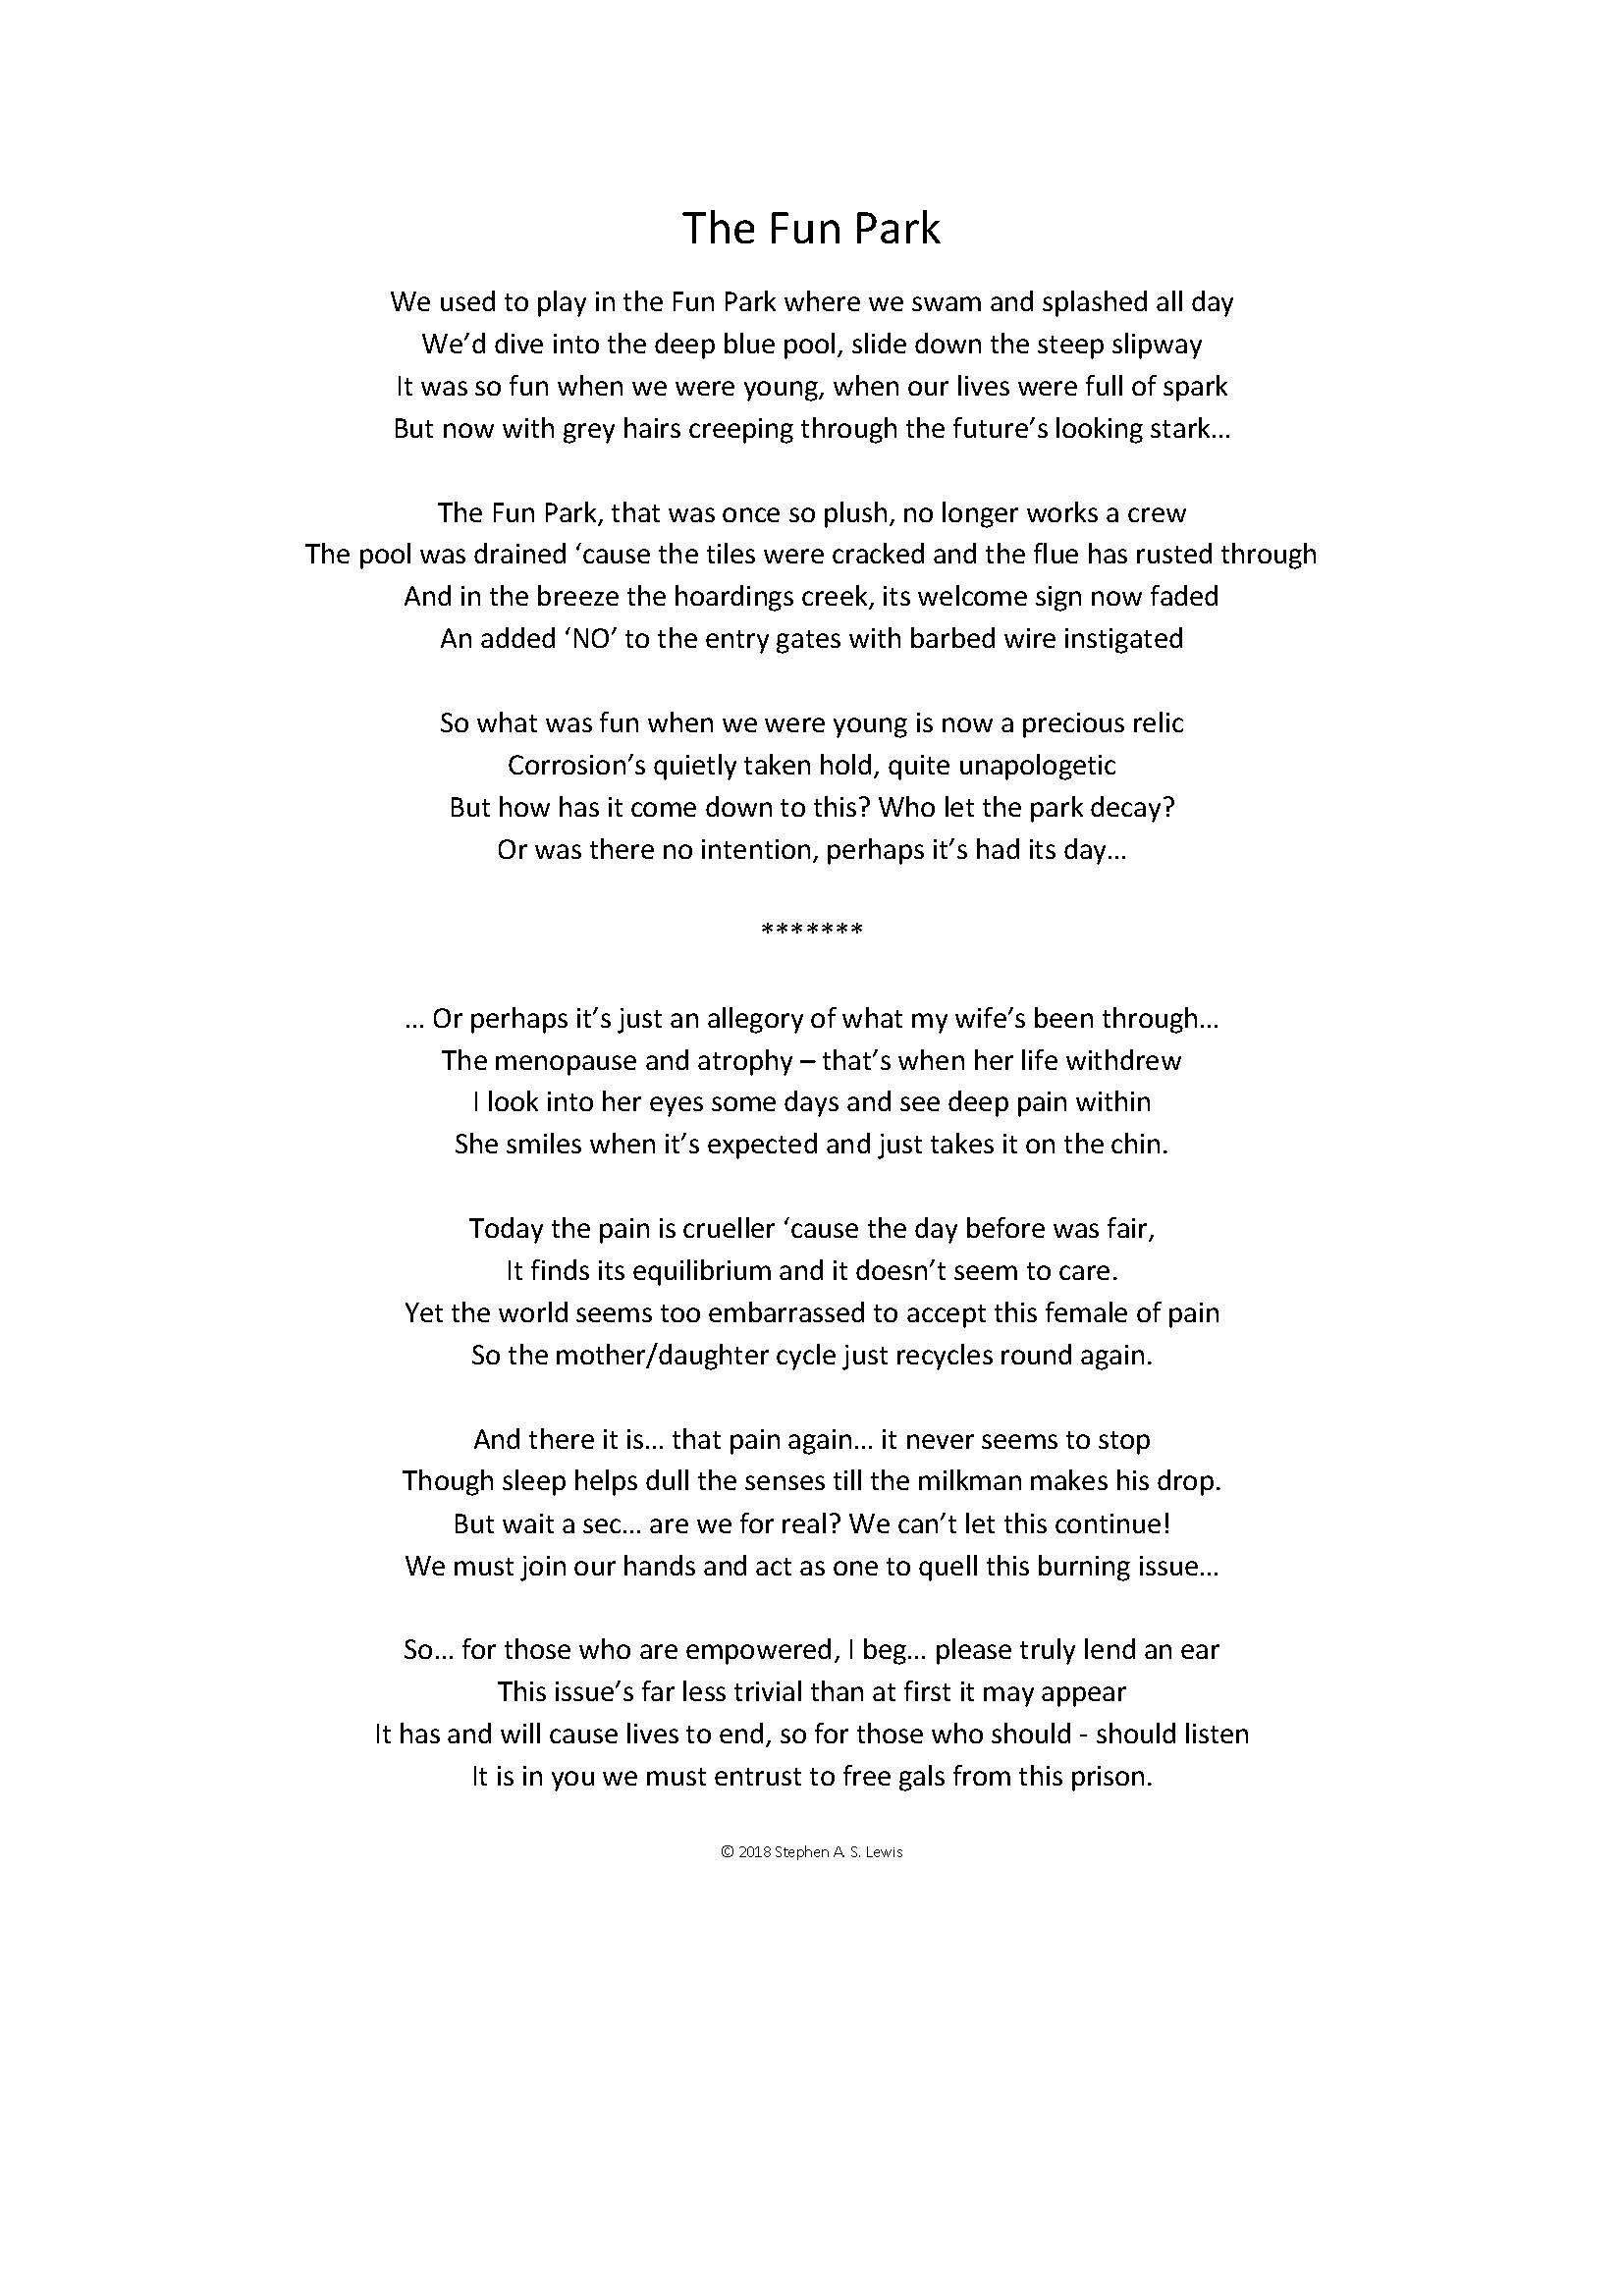 The Fun Park A Poem By My Husband Bradstreet loves her husband and wishes it to continue even after their deaths. the fun park a poem by my husband